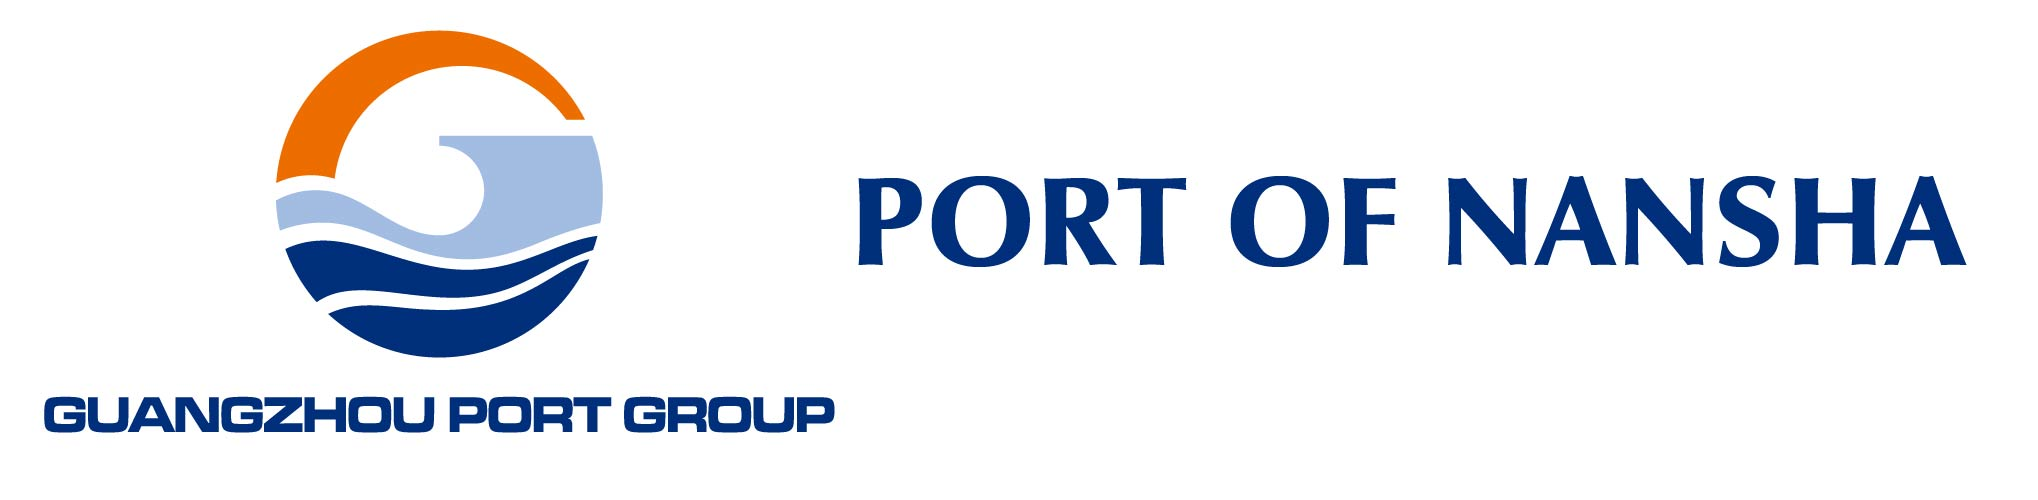 Port of Nansha Logo.final2